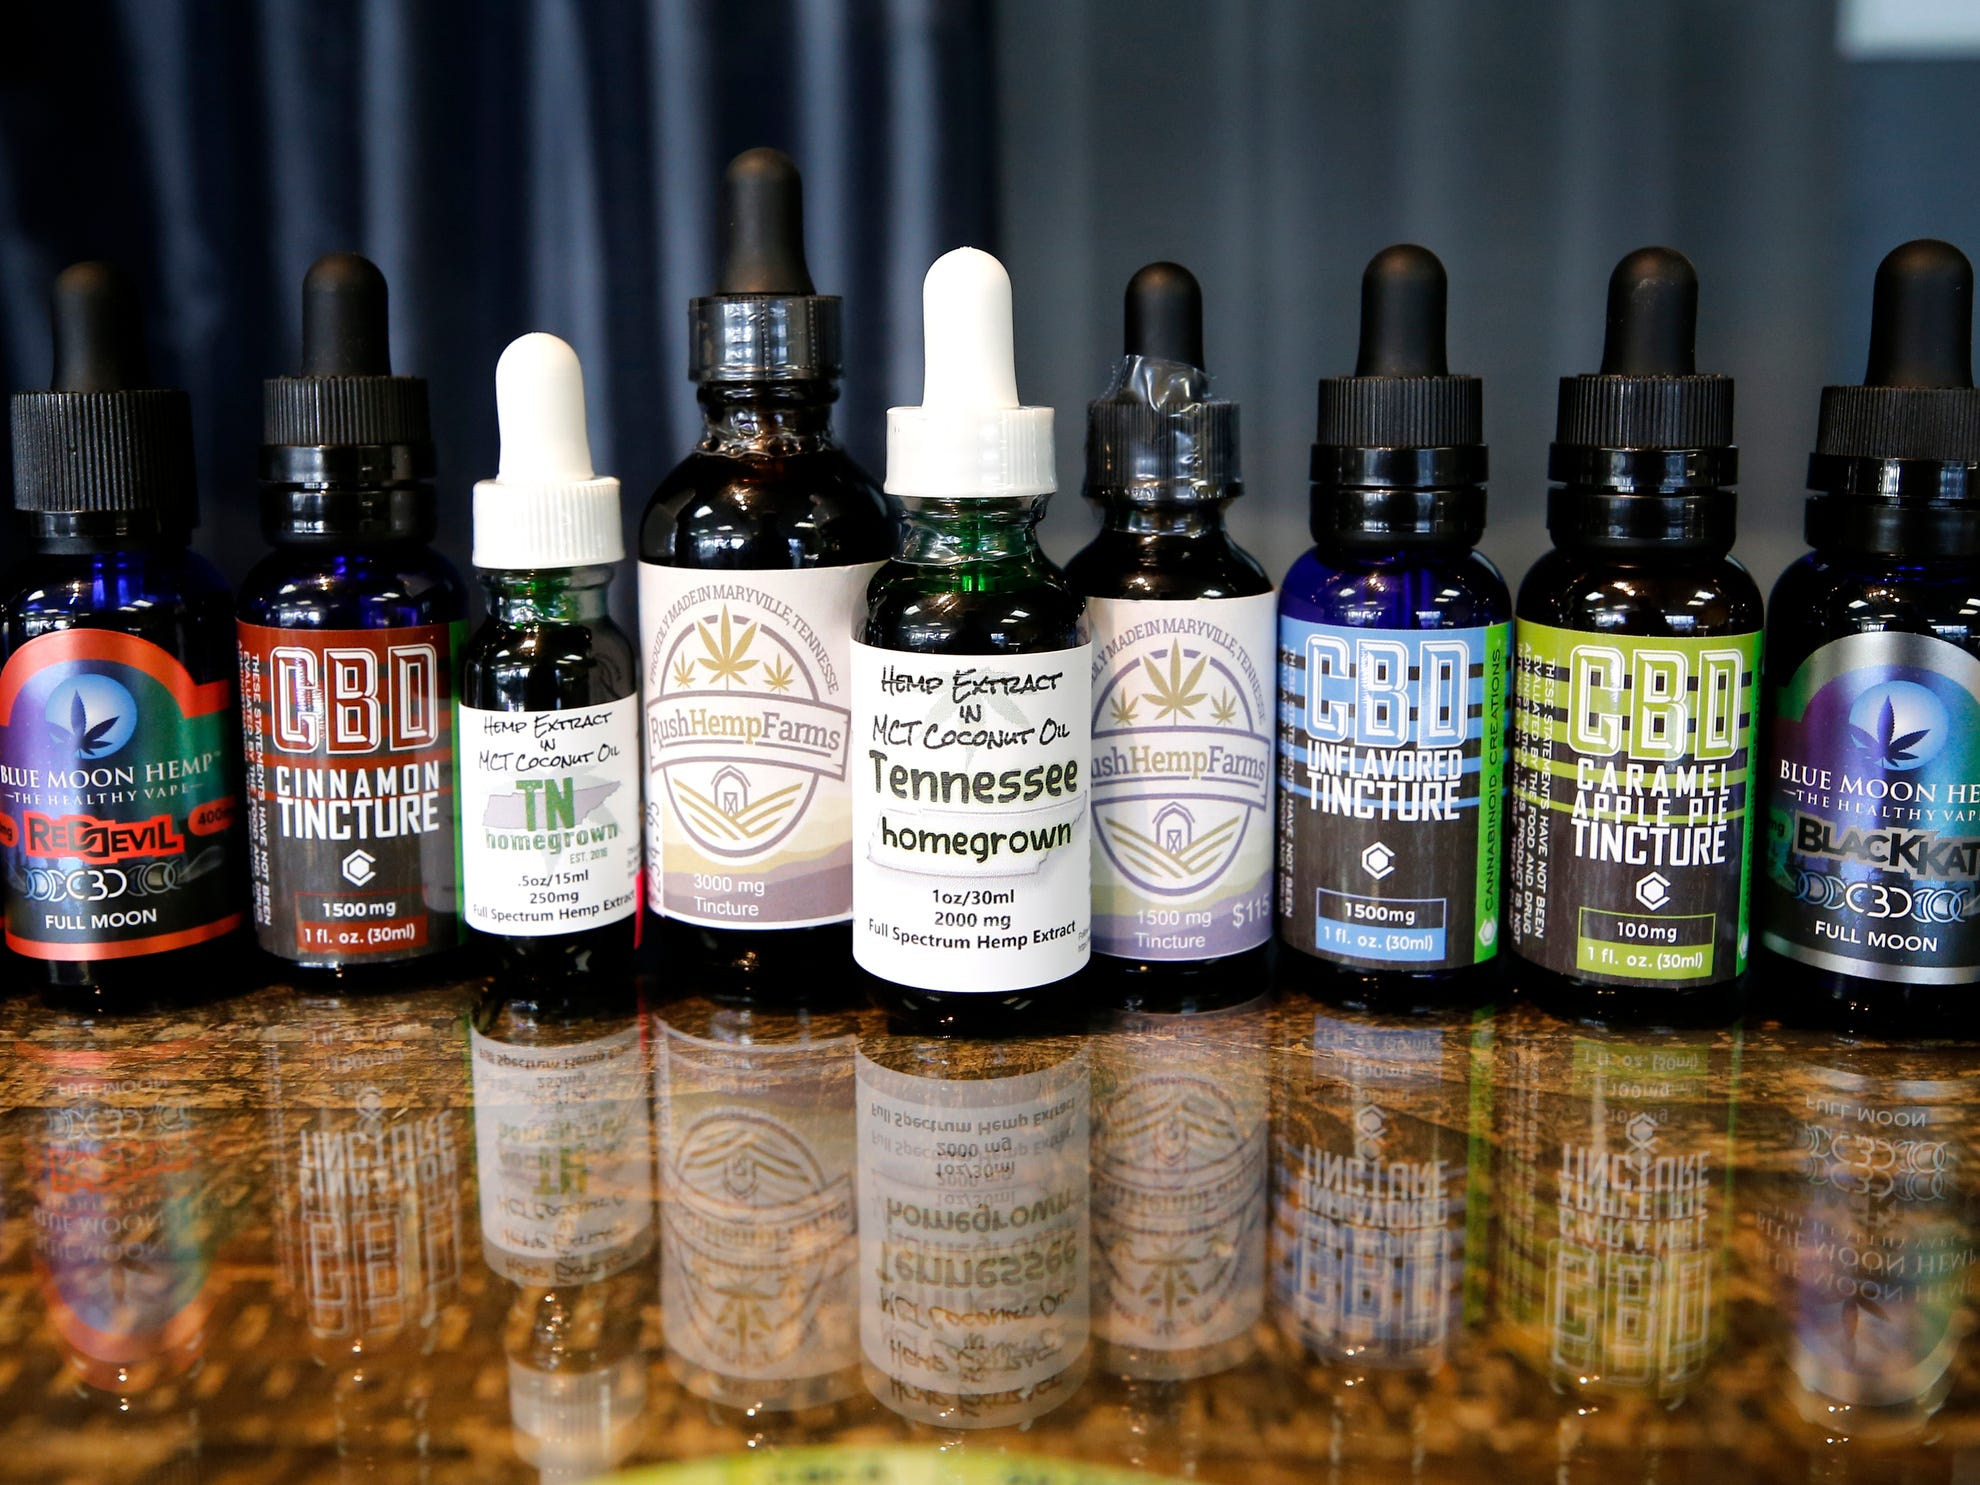 Frog Brigade Farmacy, in Murfreesboro carries a variety of CDB oils for vaping as well as pain.